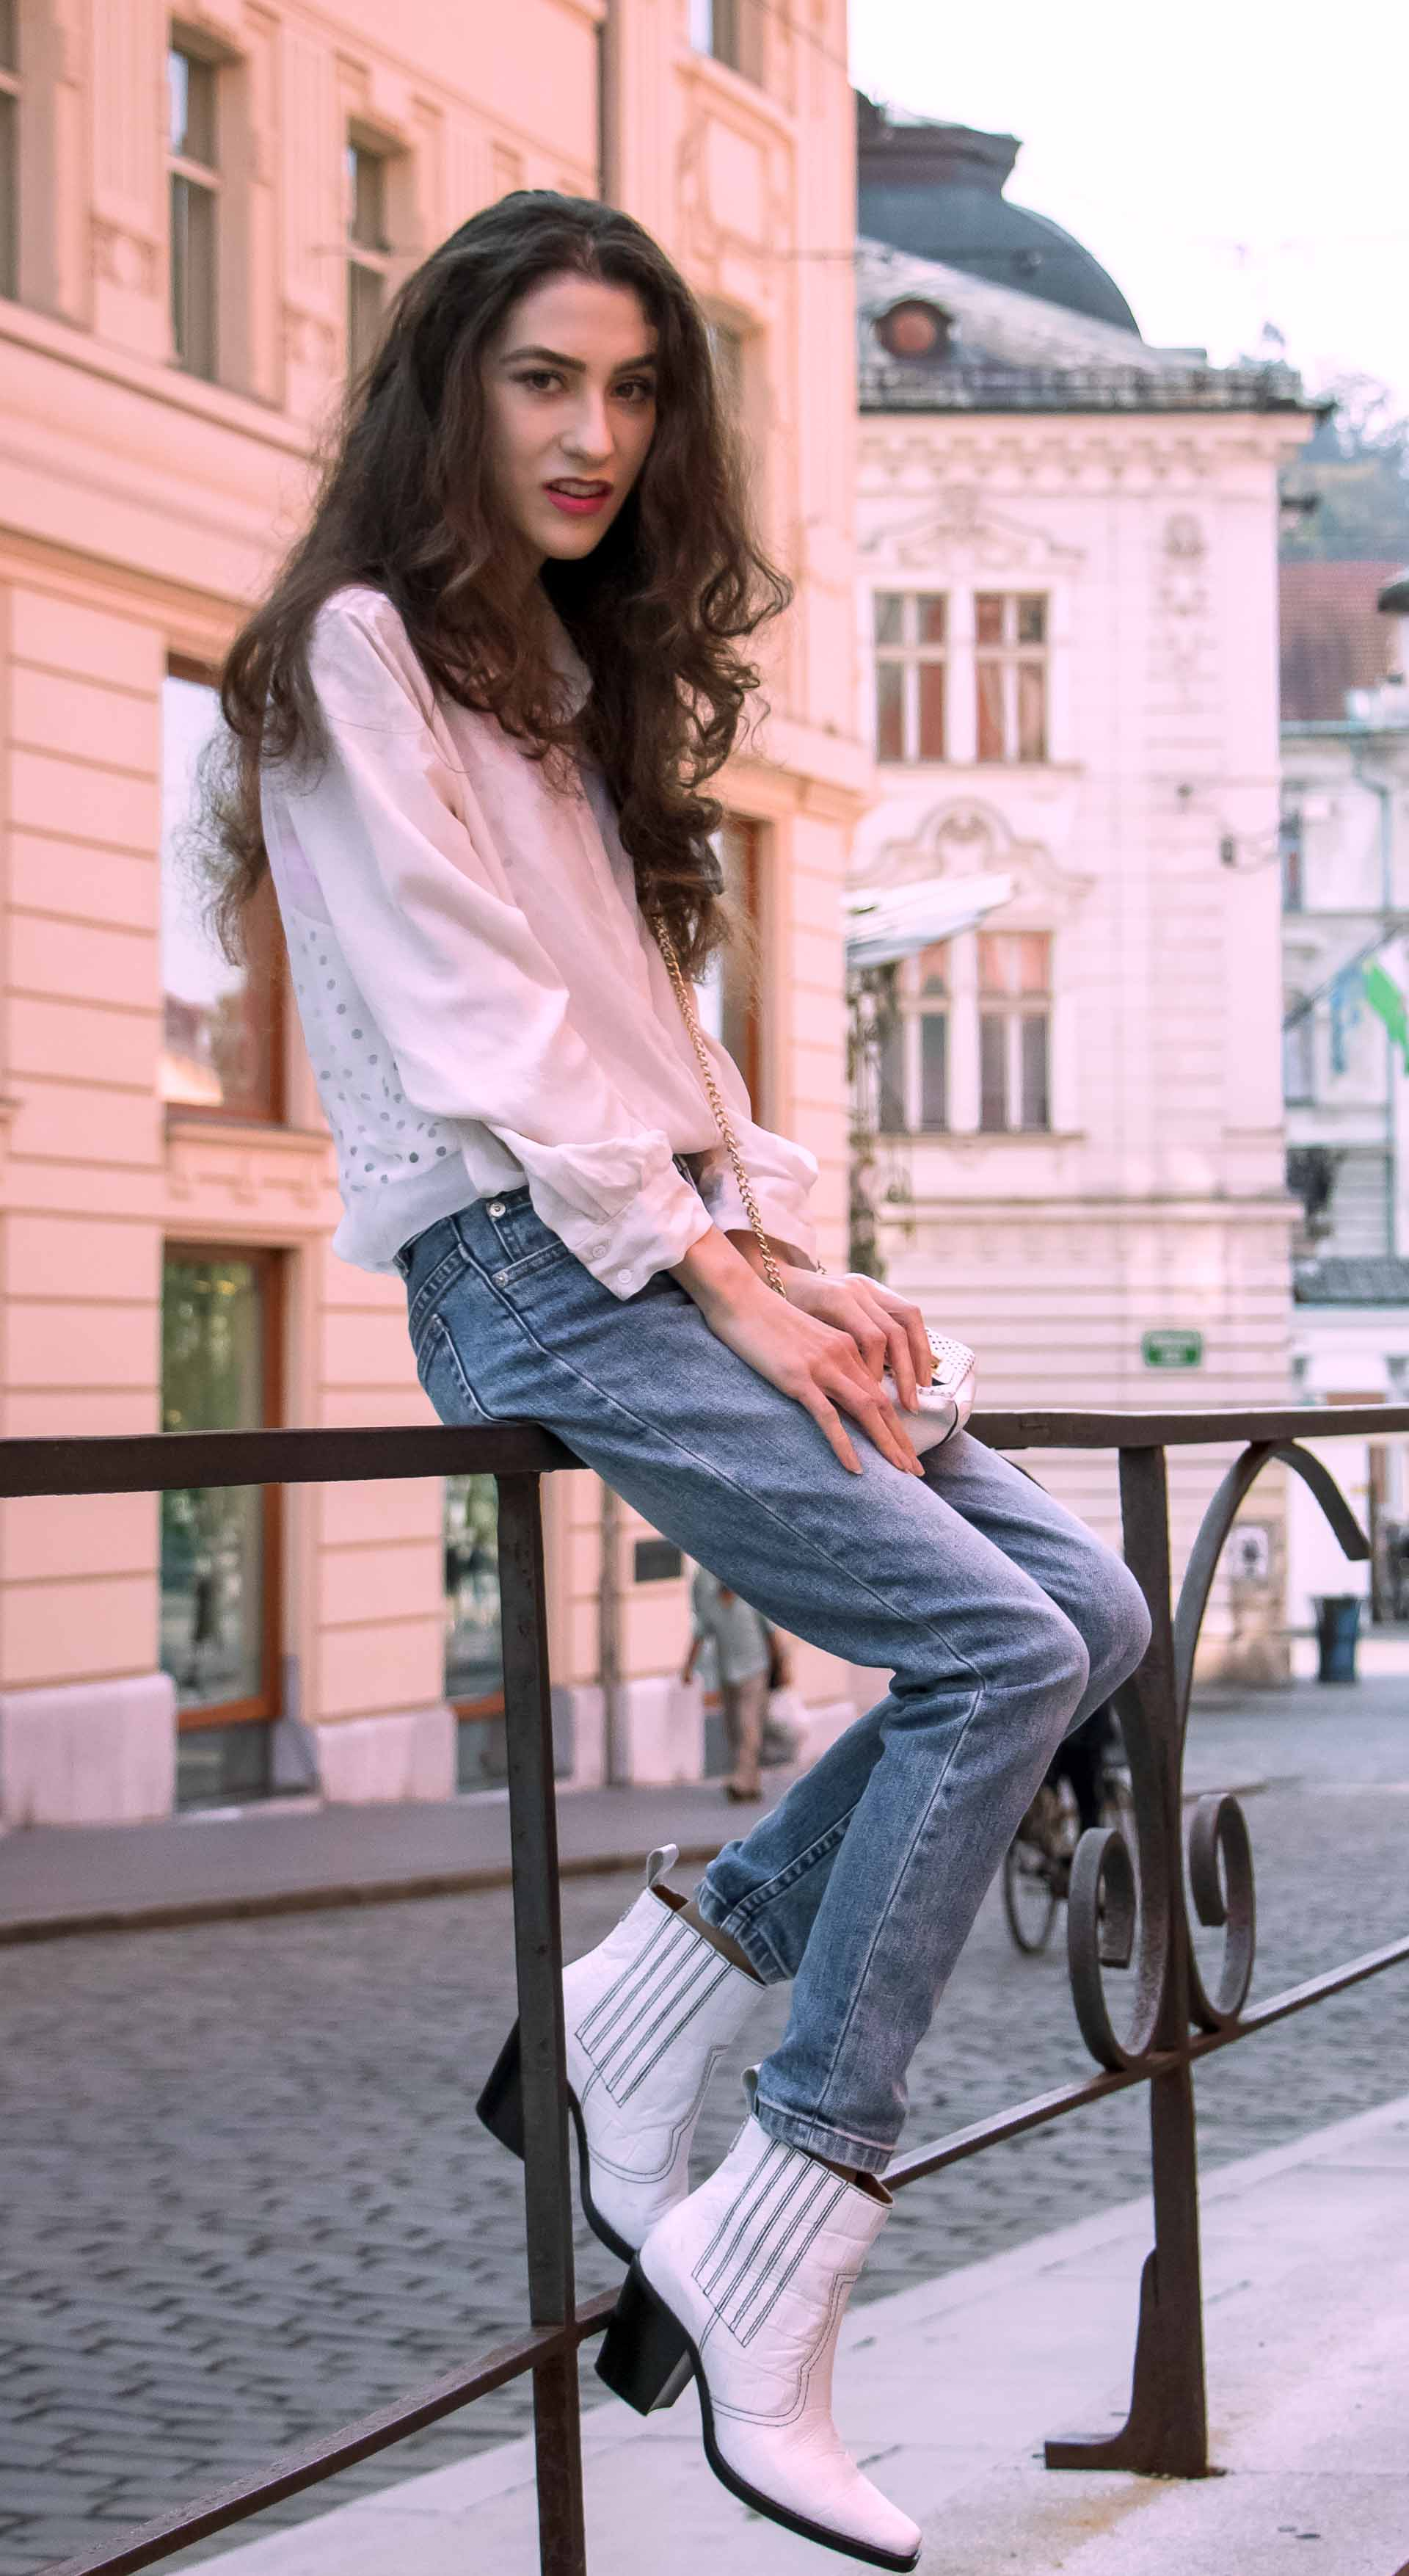 Beautiful Slovenian Fashion Blogger Veronika Lipar of Brunette from Wall dressed in white silk shirt from Sandro Paris, white and black polka dot cami slip top, A.P.C. light blue jeans, white Ganni Western boots, chain strap shoulder bag sitting on the fence in Ljubljana